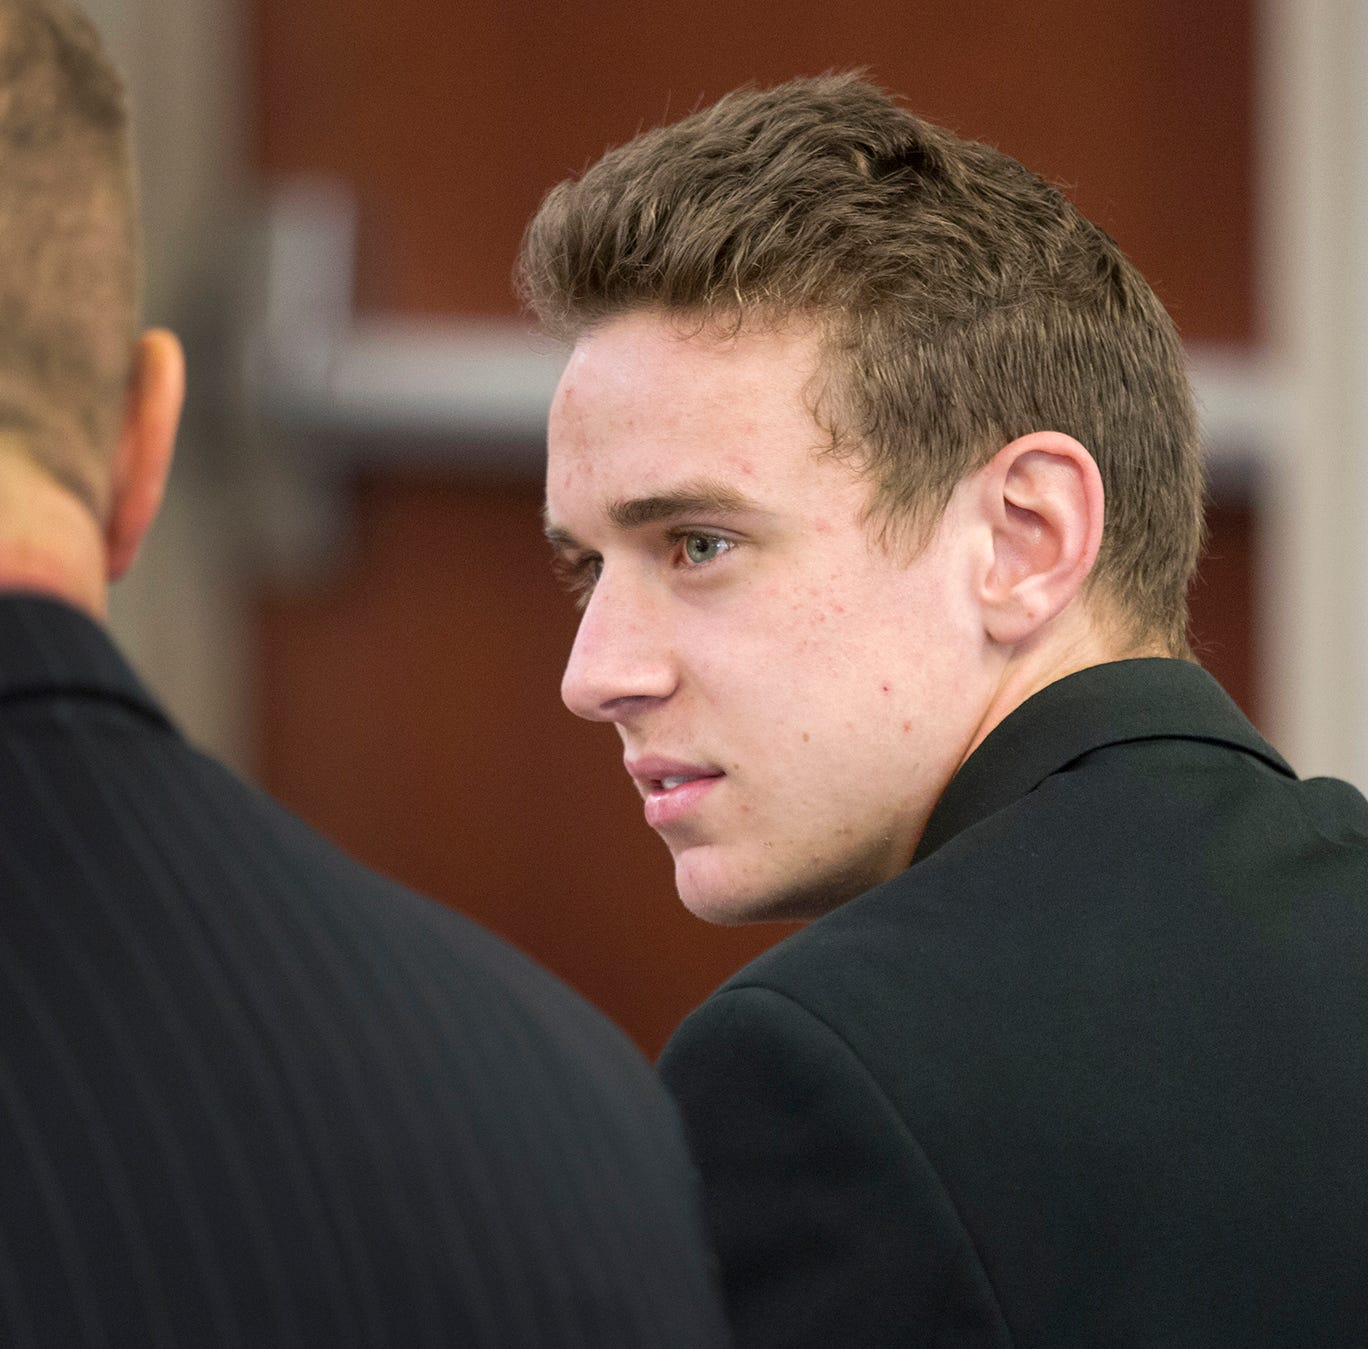 Video Image: Jerome Kunkel, 18, confers with his attorney, Thomas Burns, during his hearing in Boone County Circuit Court Monday, April 1, 2019. Jerome, a senior at Assumption Academy in Walton objected to the demand of public health officials for vaccinations against chickenpox when 32 students at his small Catholic school came down with the illness this year.